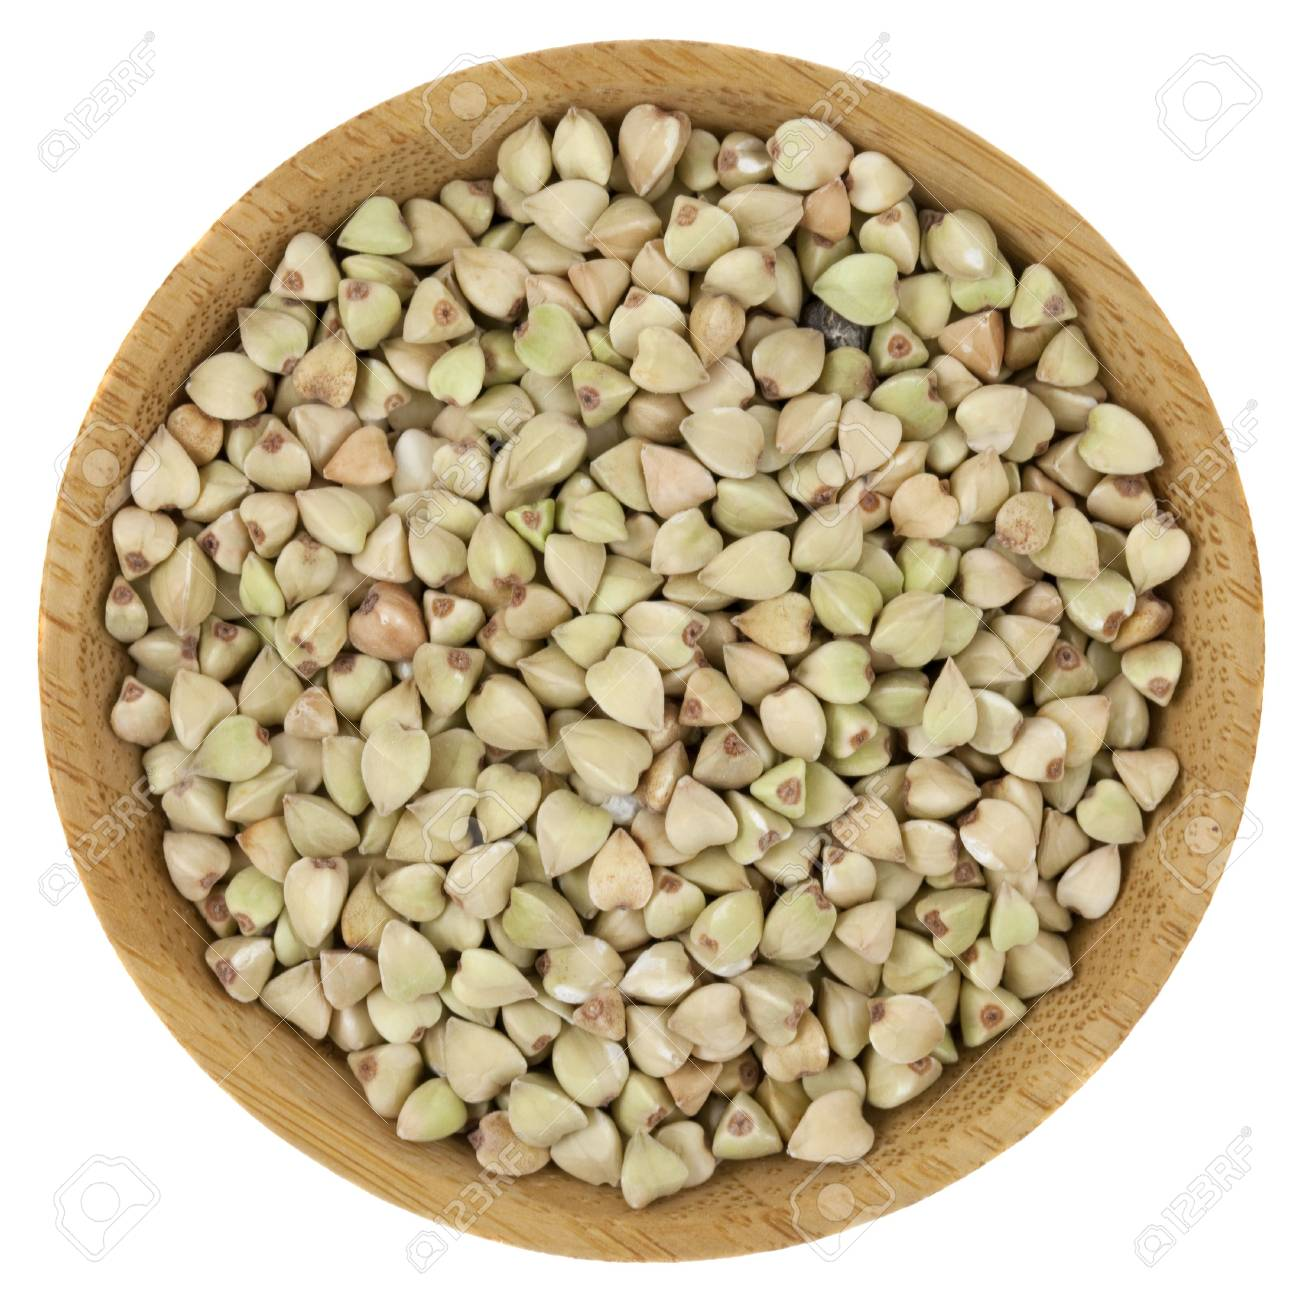 buckwheat groats on a small wooden bowl isolated on white Stock Photo - 6699639